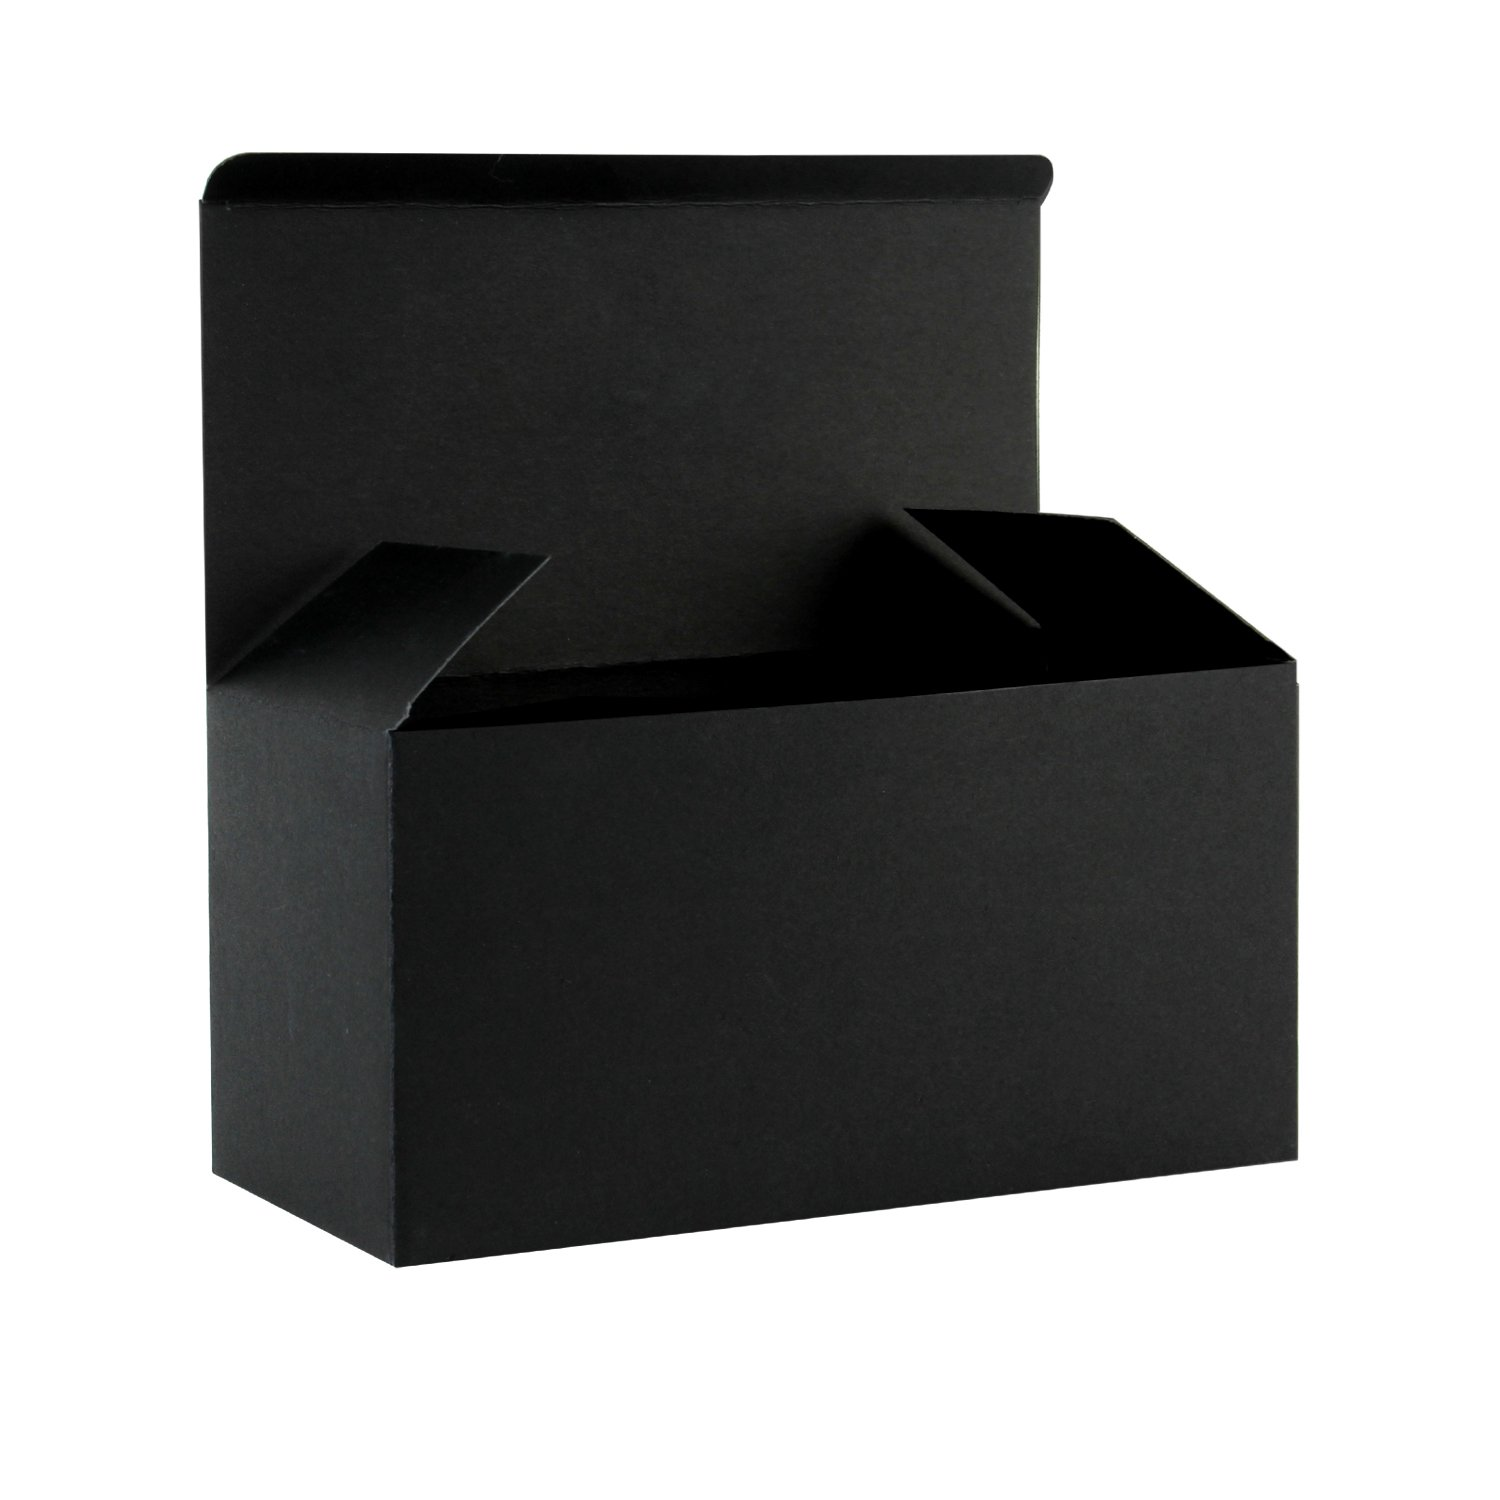 Ruspepa Recycled Cardboard Gift Boxes Decorative Favor Box With Lids For Gifts Party Wedding 9 X4 5 X4 5 30 Pack Black